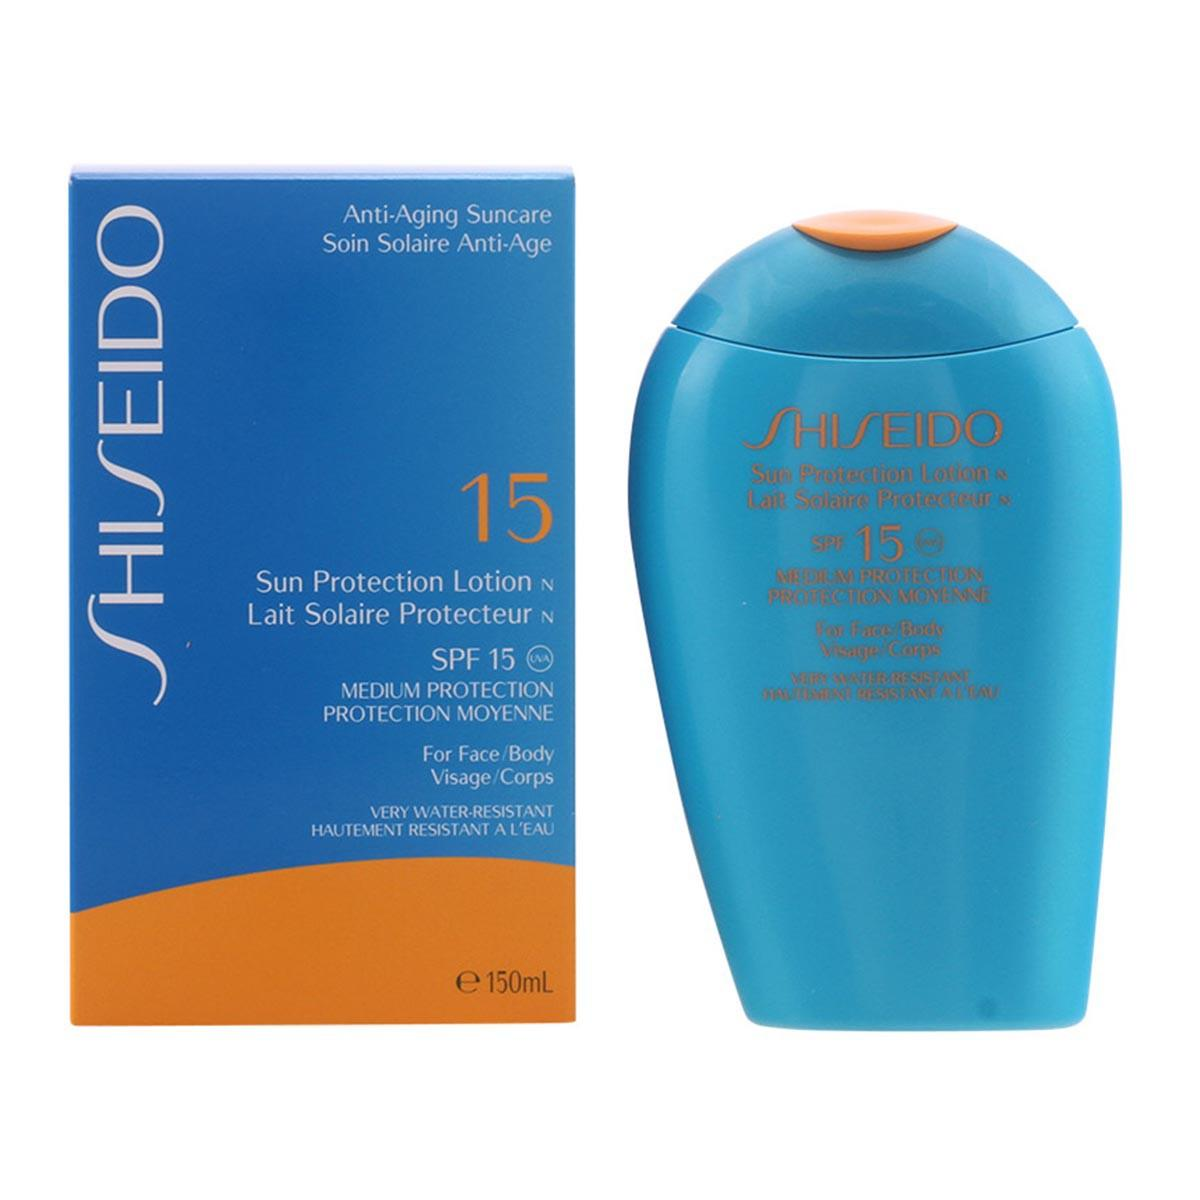 Shiseido Antiaging Suncare Sun Protection Spf15 Lotion 150ml